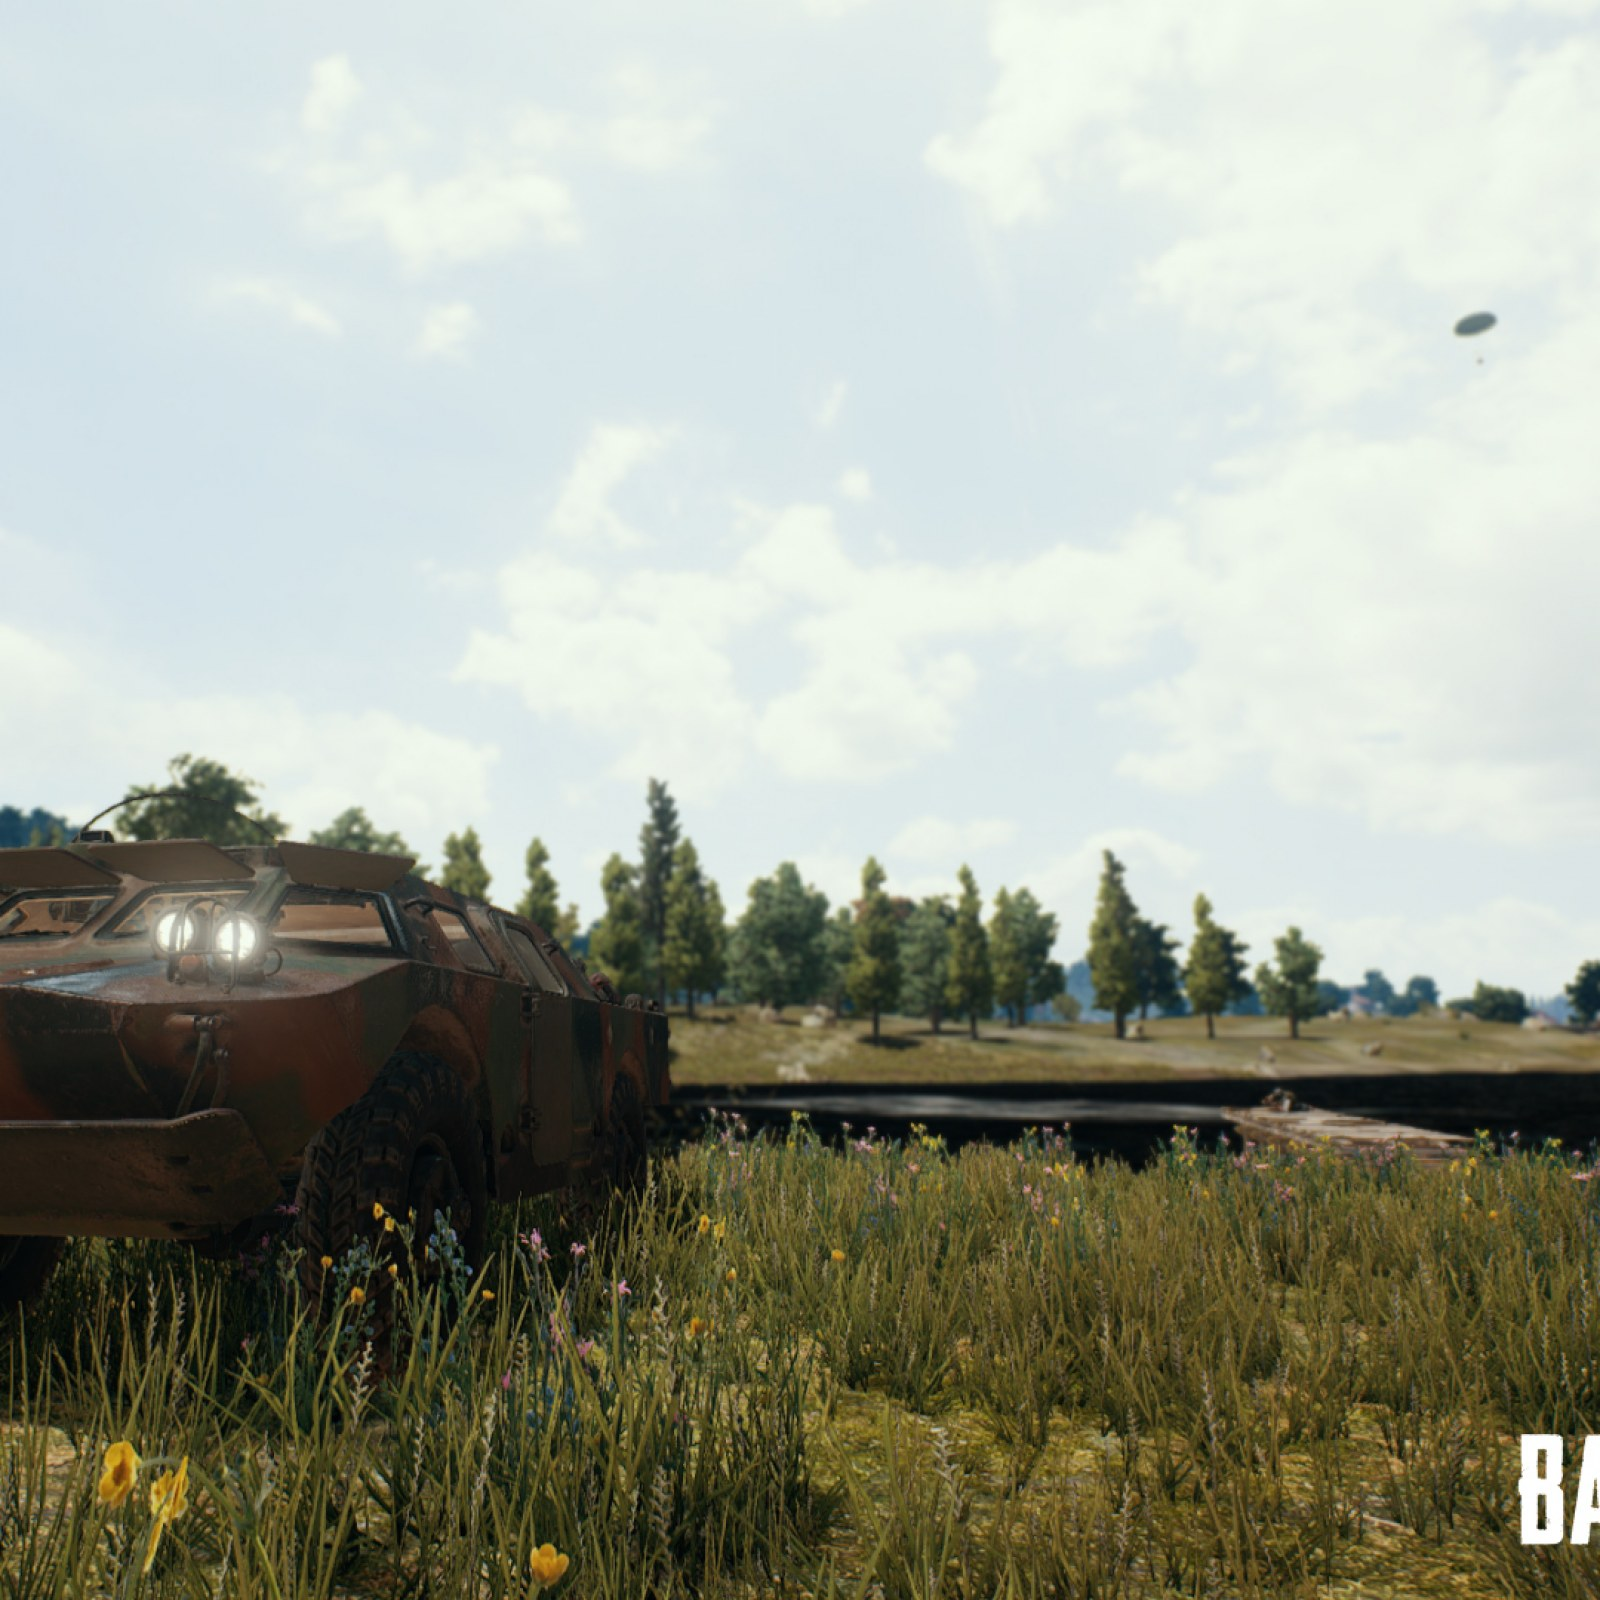 PUBG' Update 1 18 Fixes Crashing & Bugs on PS4 & Xbox